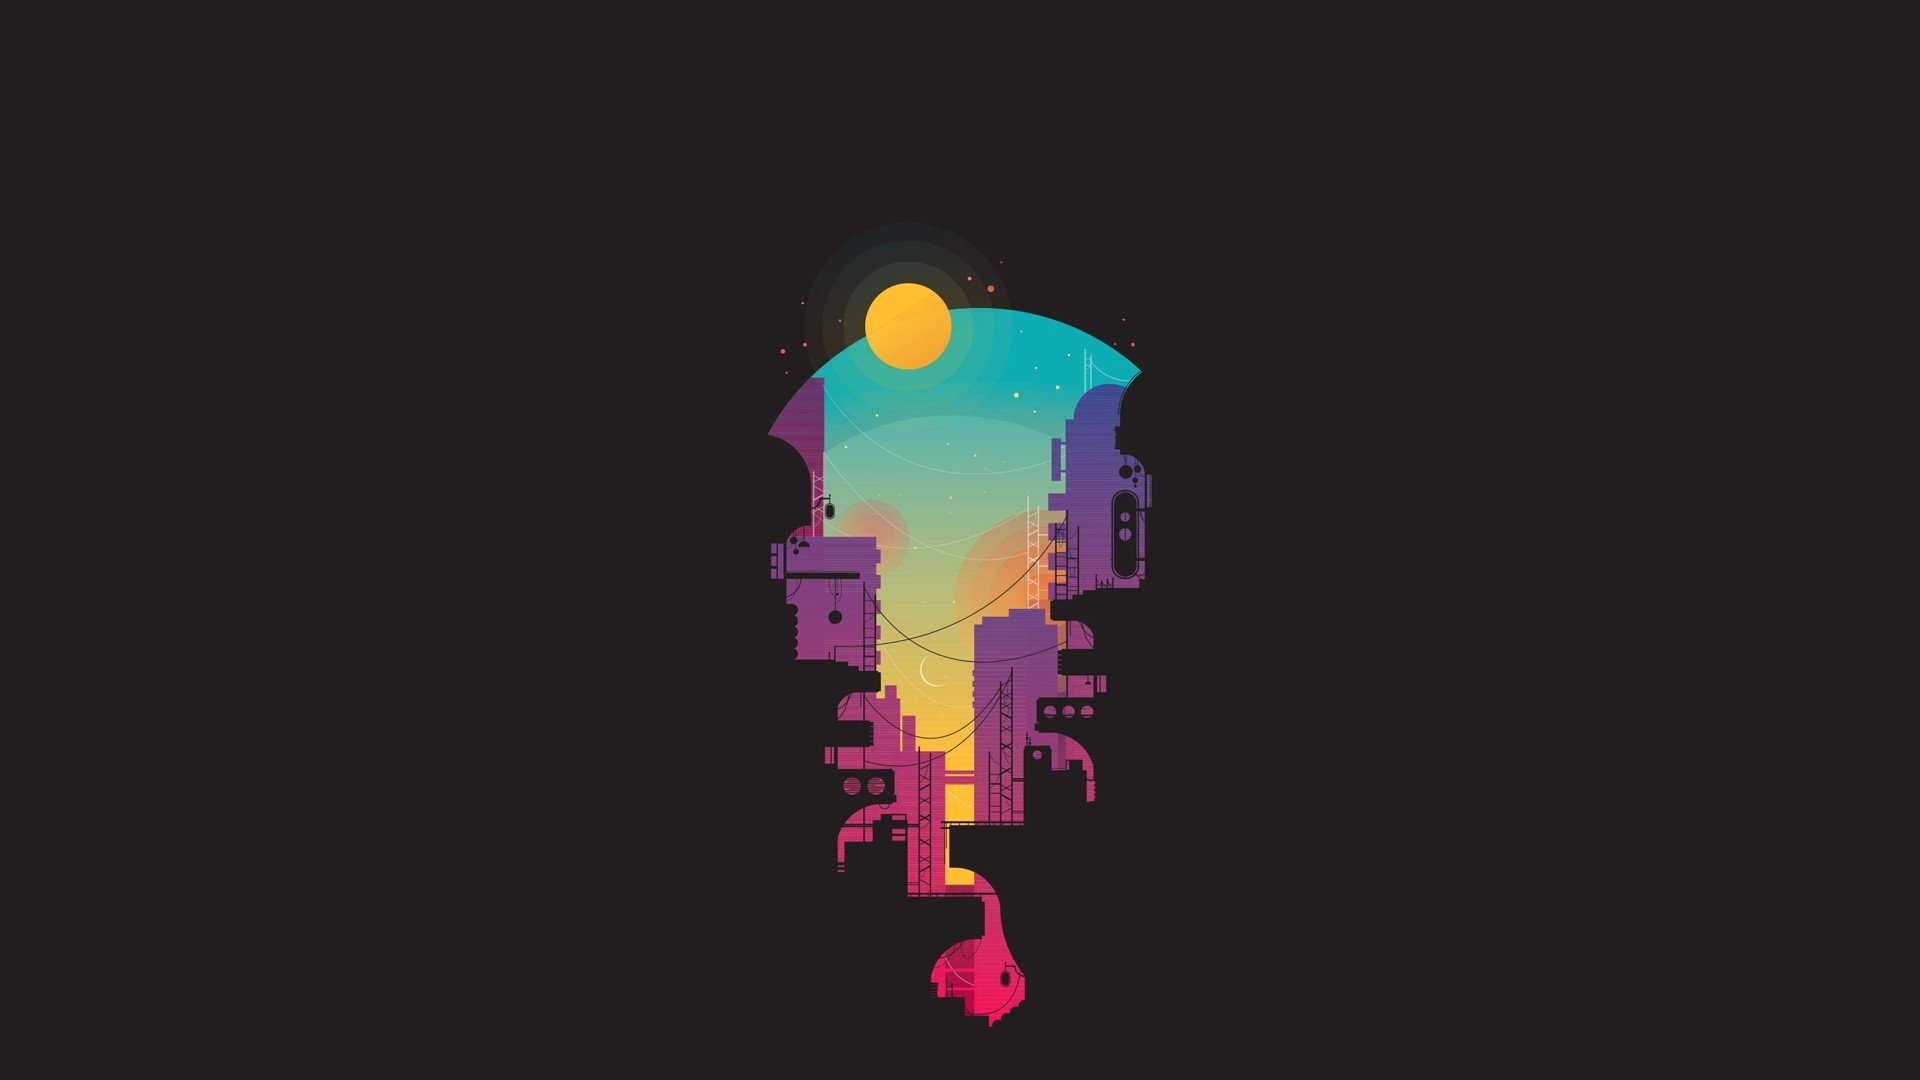 Res: 1920x1080, Minimalist Wallpaper Awesome City Minimalism Hd Artist 4k Wallpapers  Backgrounds